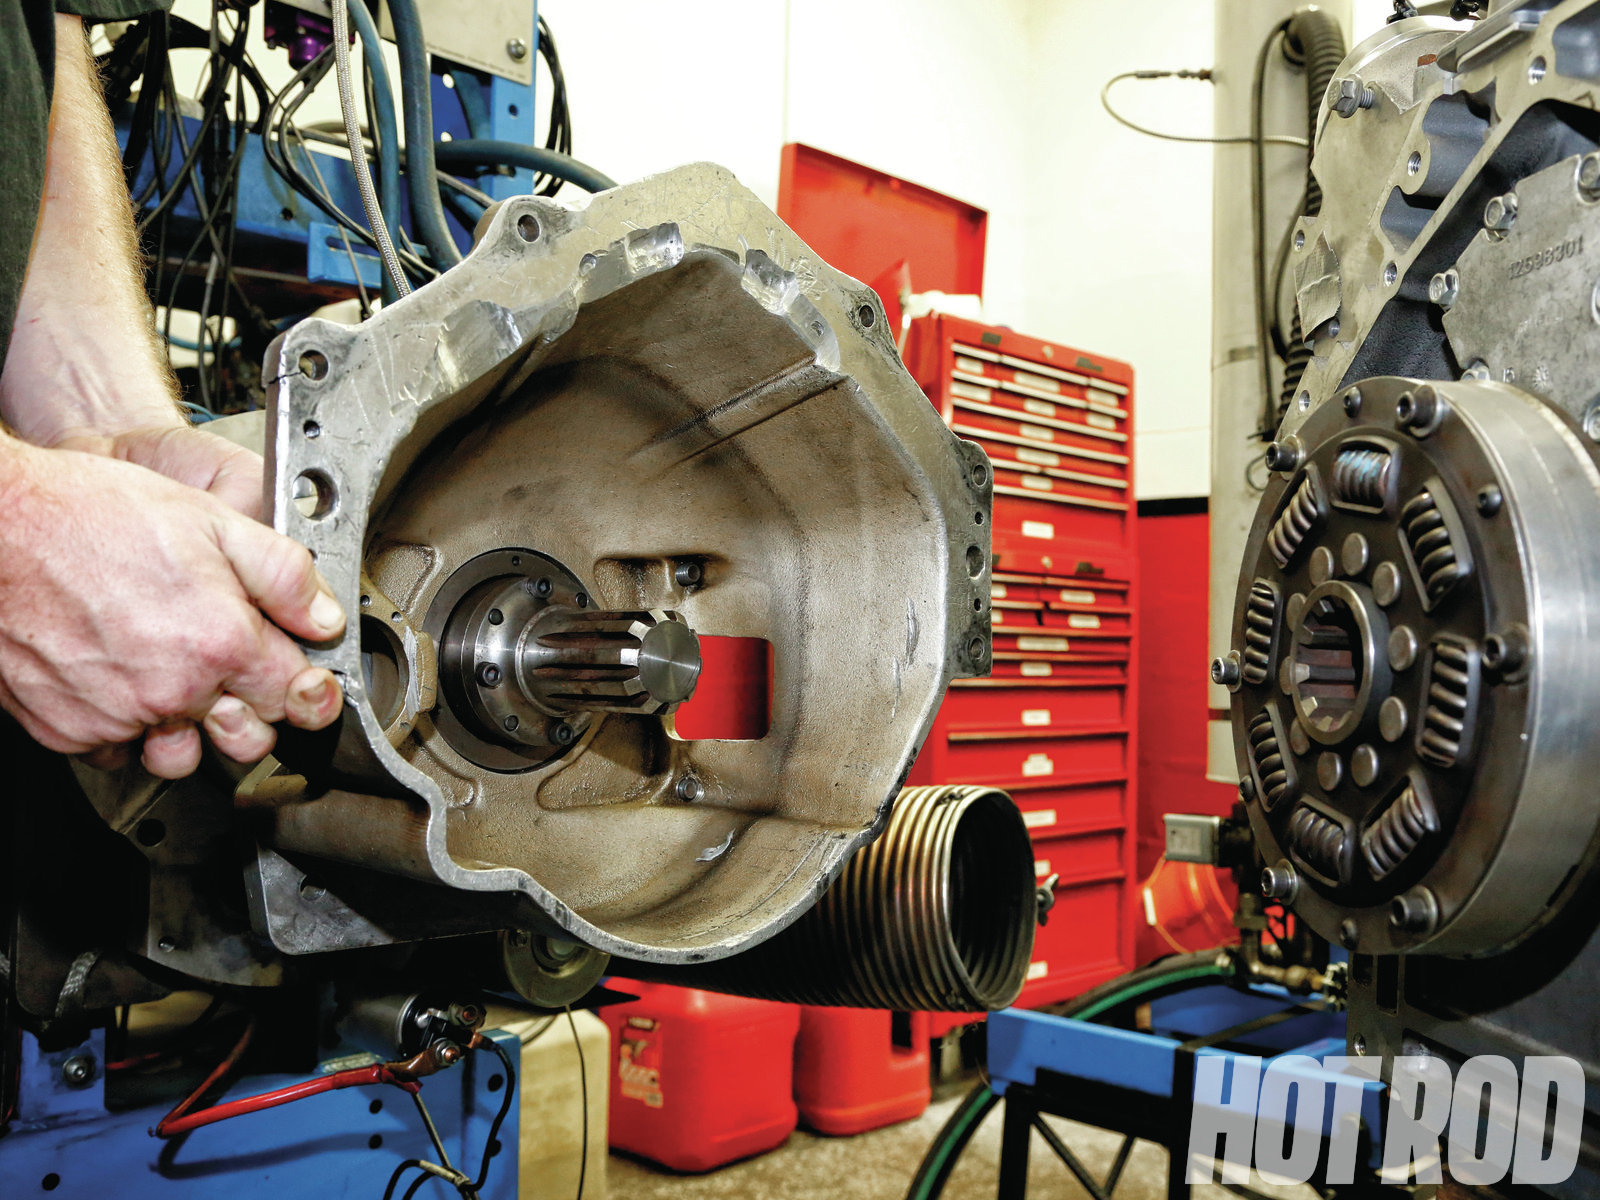 [05] The flywheel hub slides over the water brake's input shaft and transmits engine torque to the dyno. SuperFlow offers a variety of GM, Ford, and Chrysler bellhousings to attach the power-absorption unit to virtually any type of engine. Alternately, an aftermarket scattershield can be used.